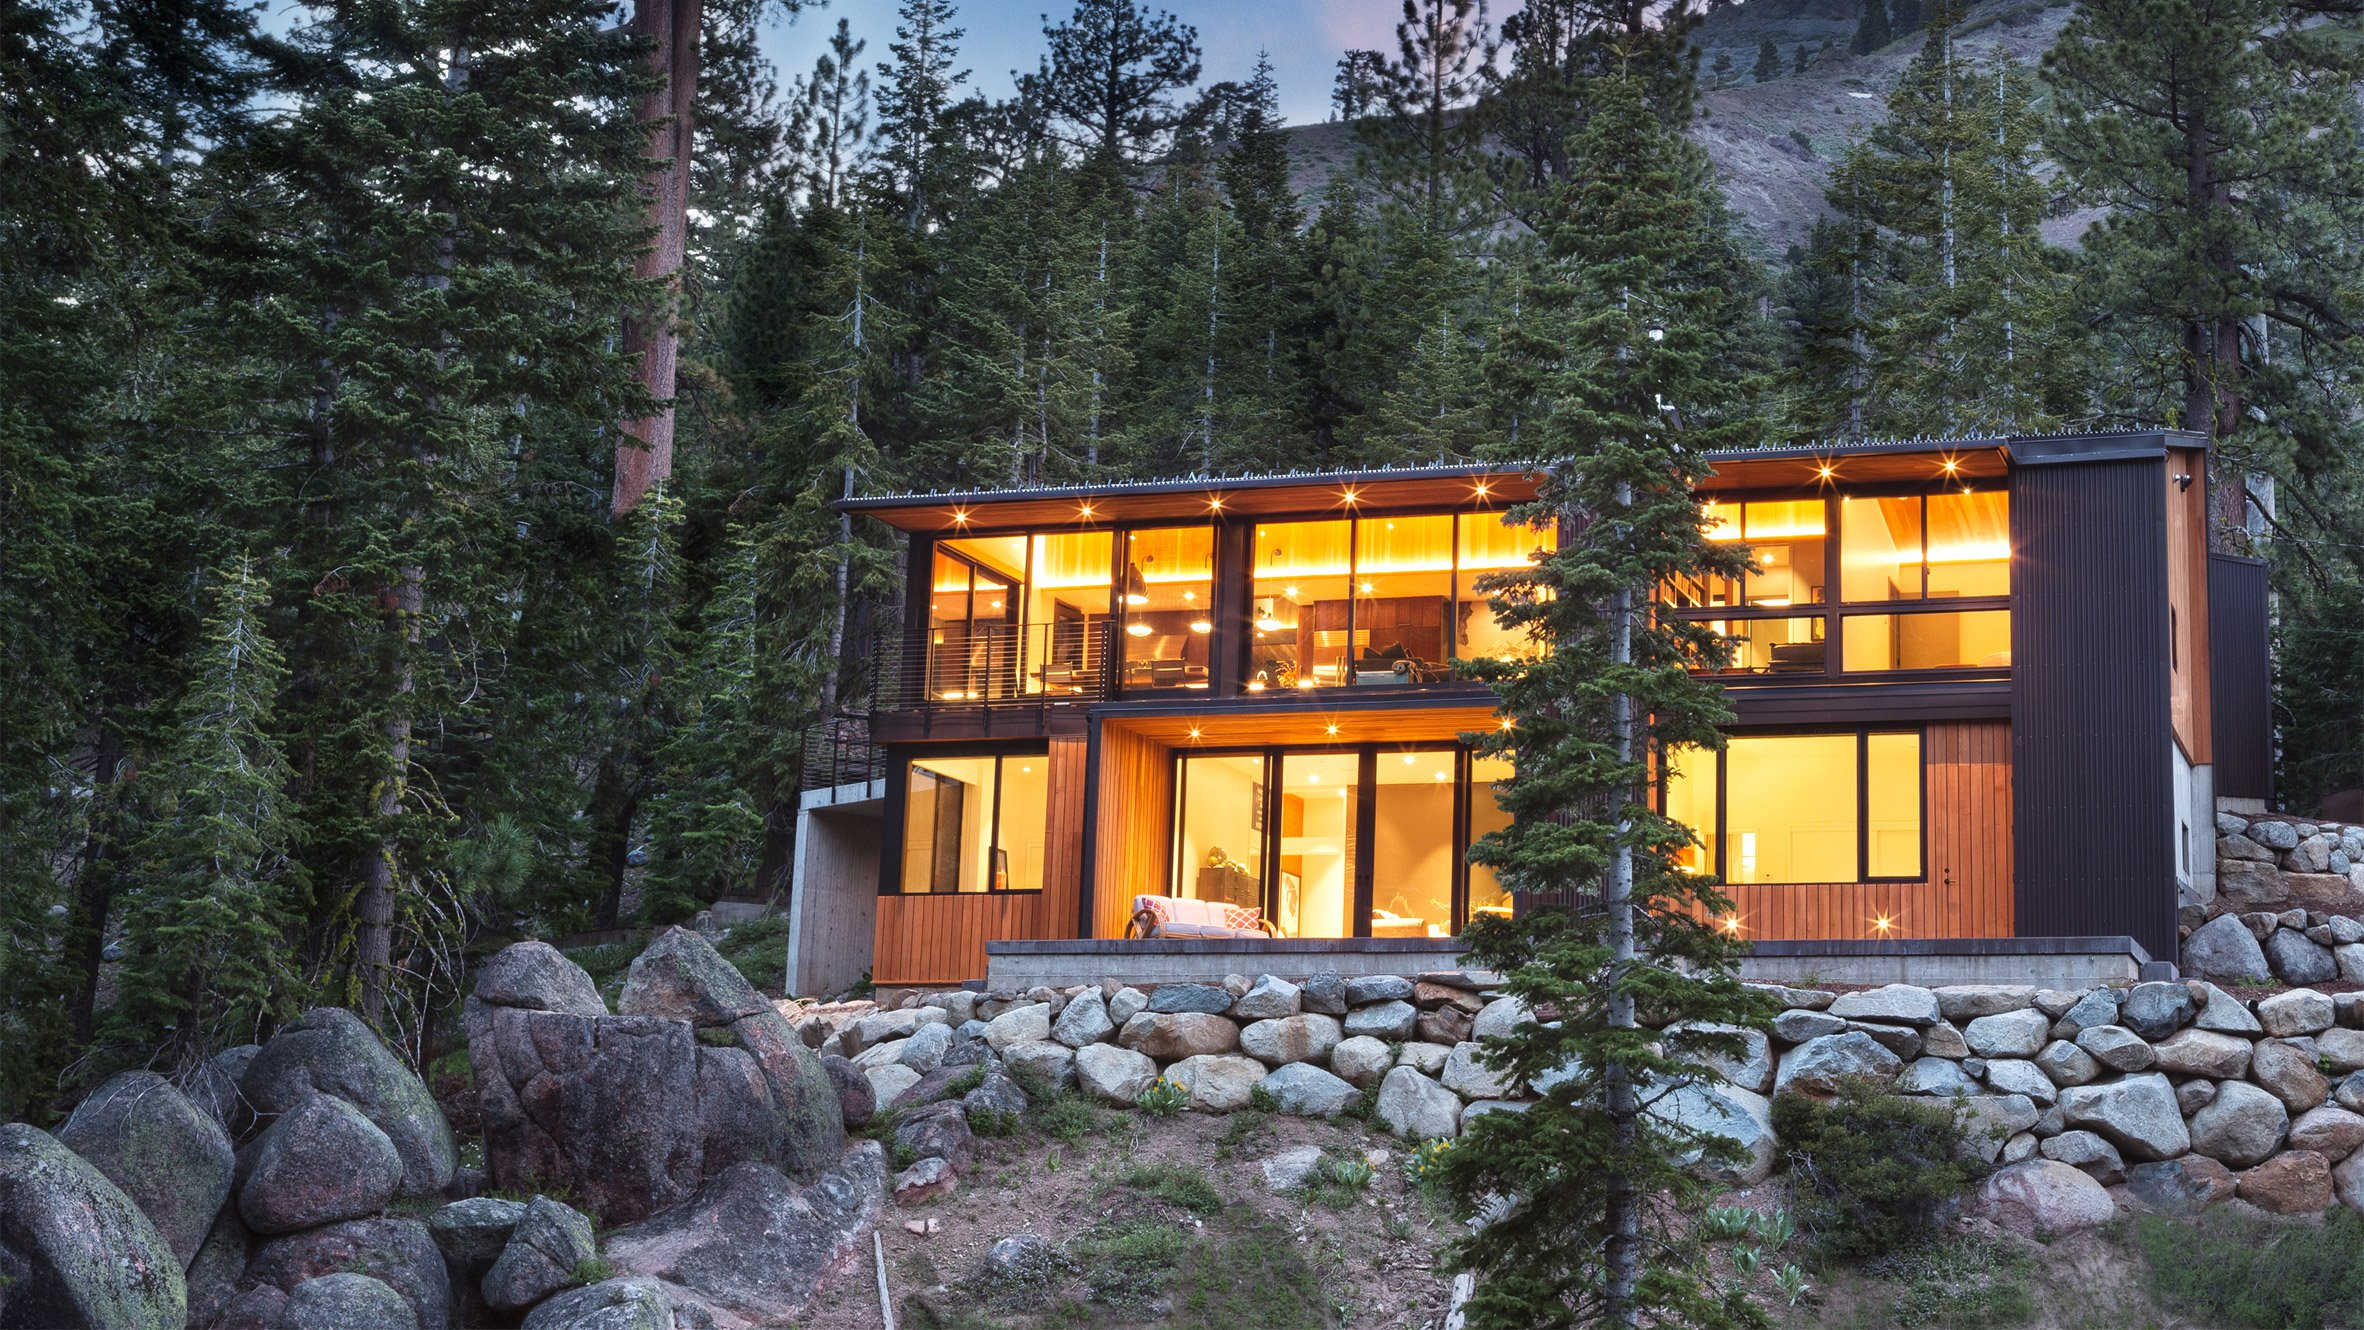 Studio Bergtraun perches black cabin on steep slope in the Sierra Nevada mountains